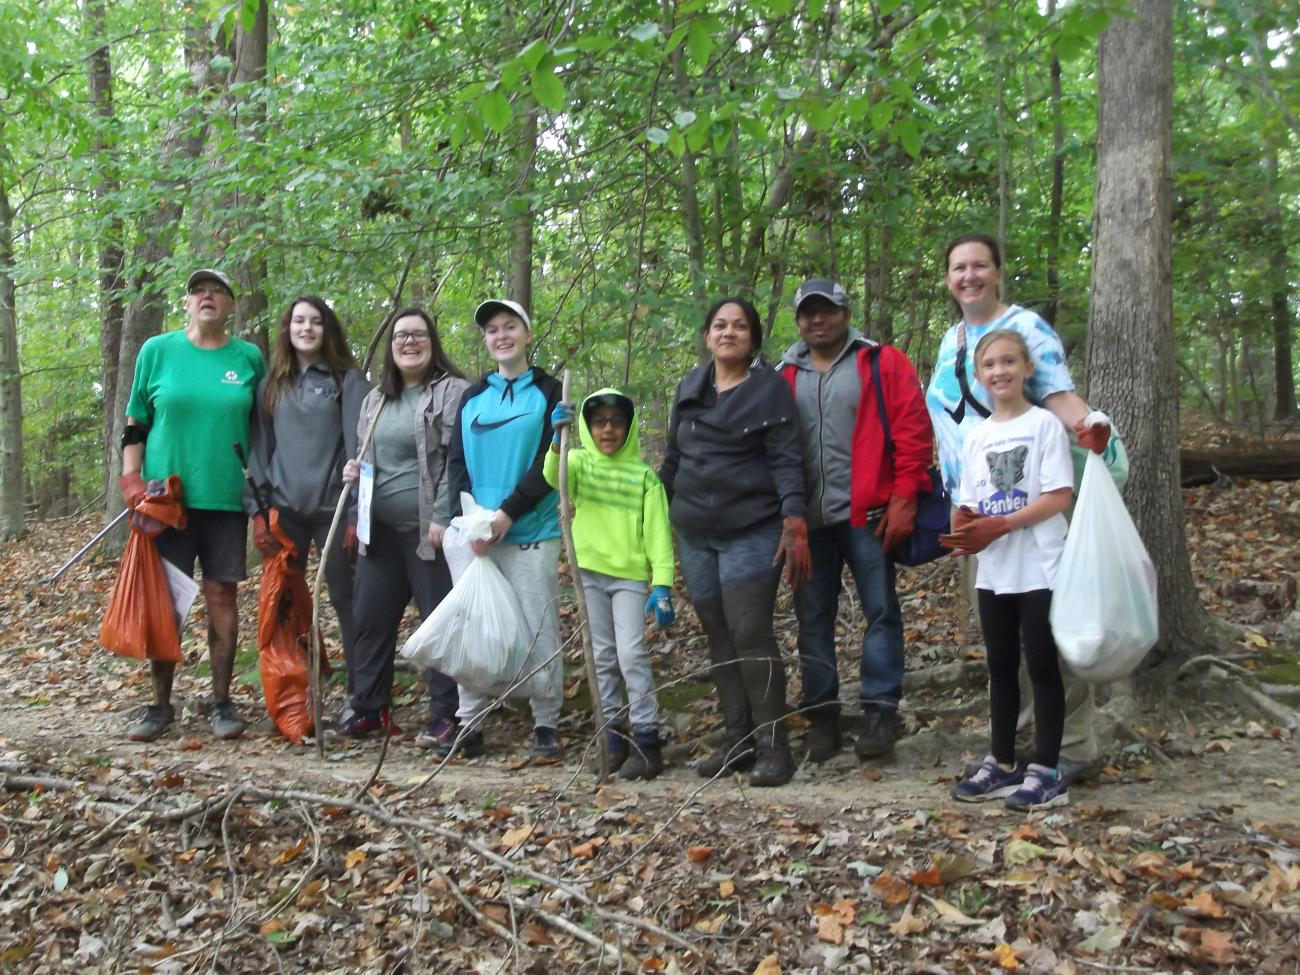 Group of volunteers after working to remove litter from the park